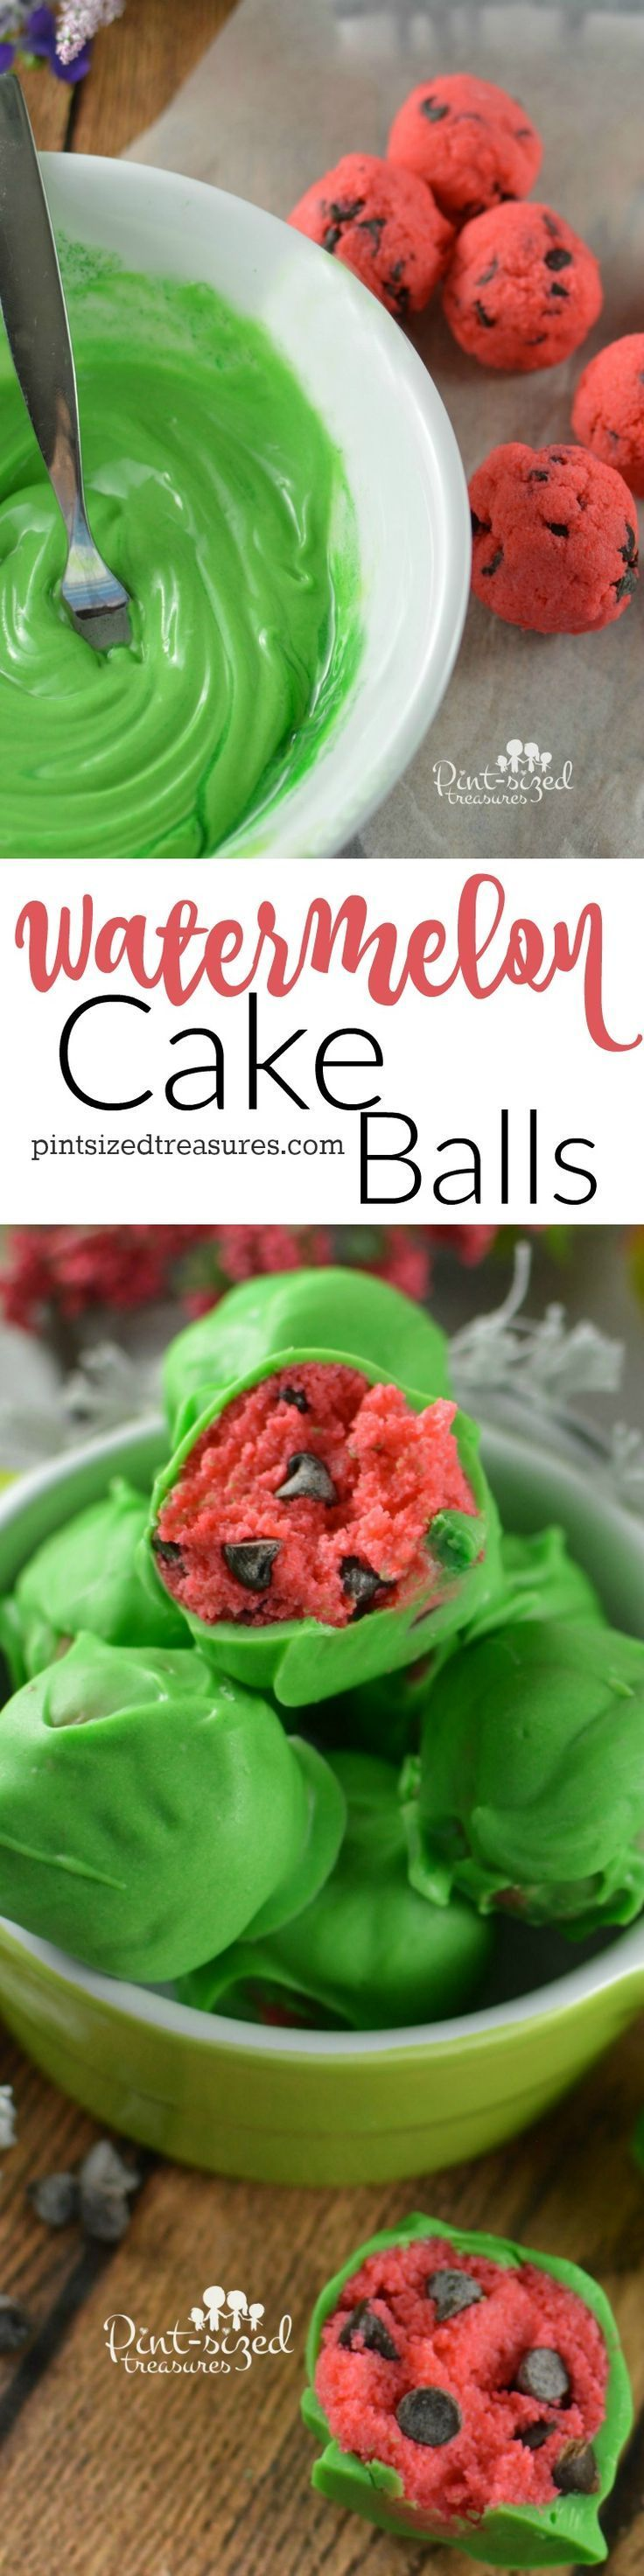 Gorgeous watermelon cake balls are a cinch to make! Take these to your next summer party and they'll be the hit of the dessert table! Too cute to miss!